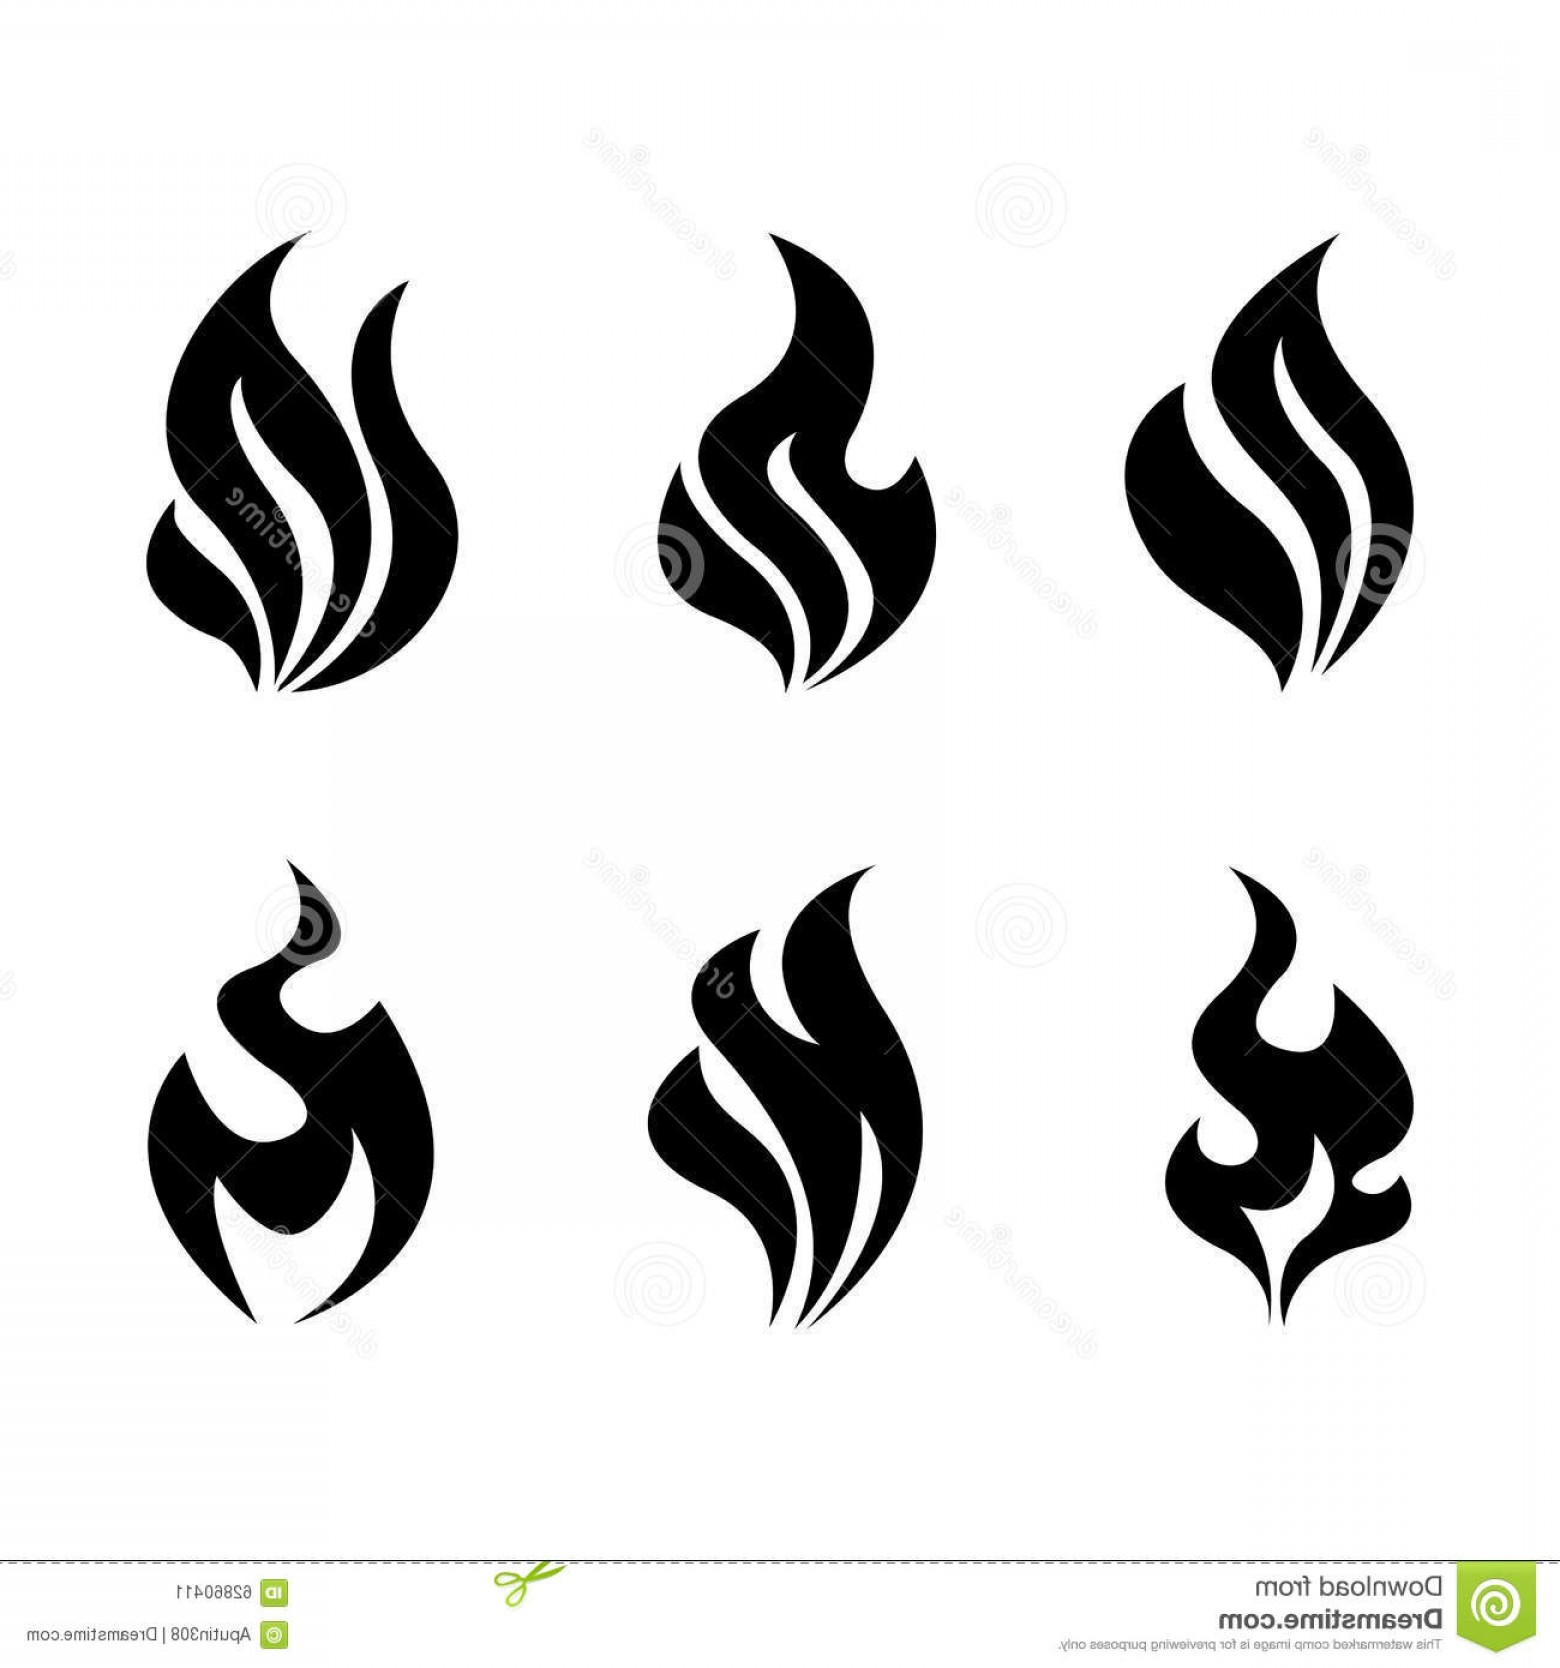 Flame Vector Icon: Stock Illustration Fire Flames Burning Vector Icon Set Hot Blazing Icons Image